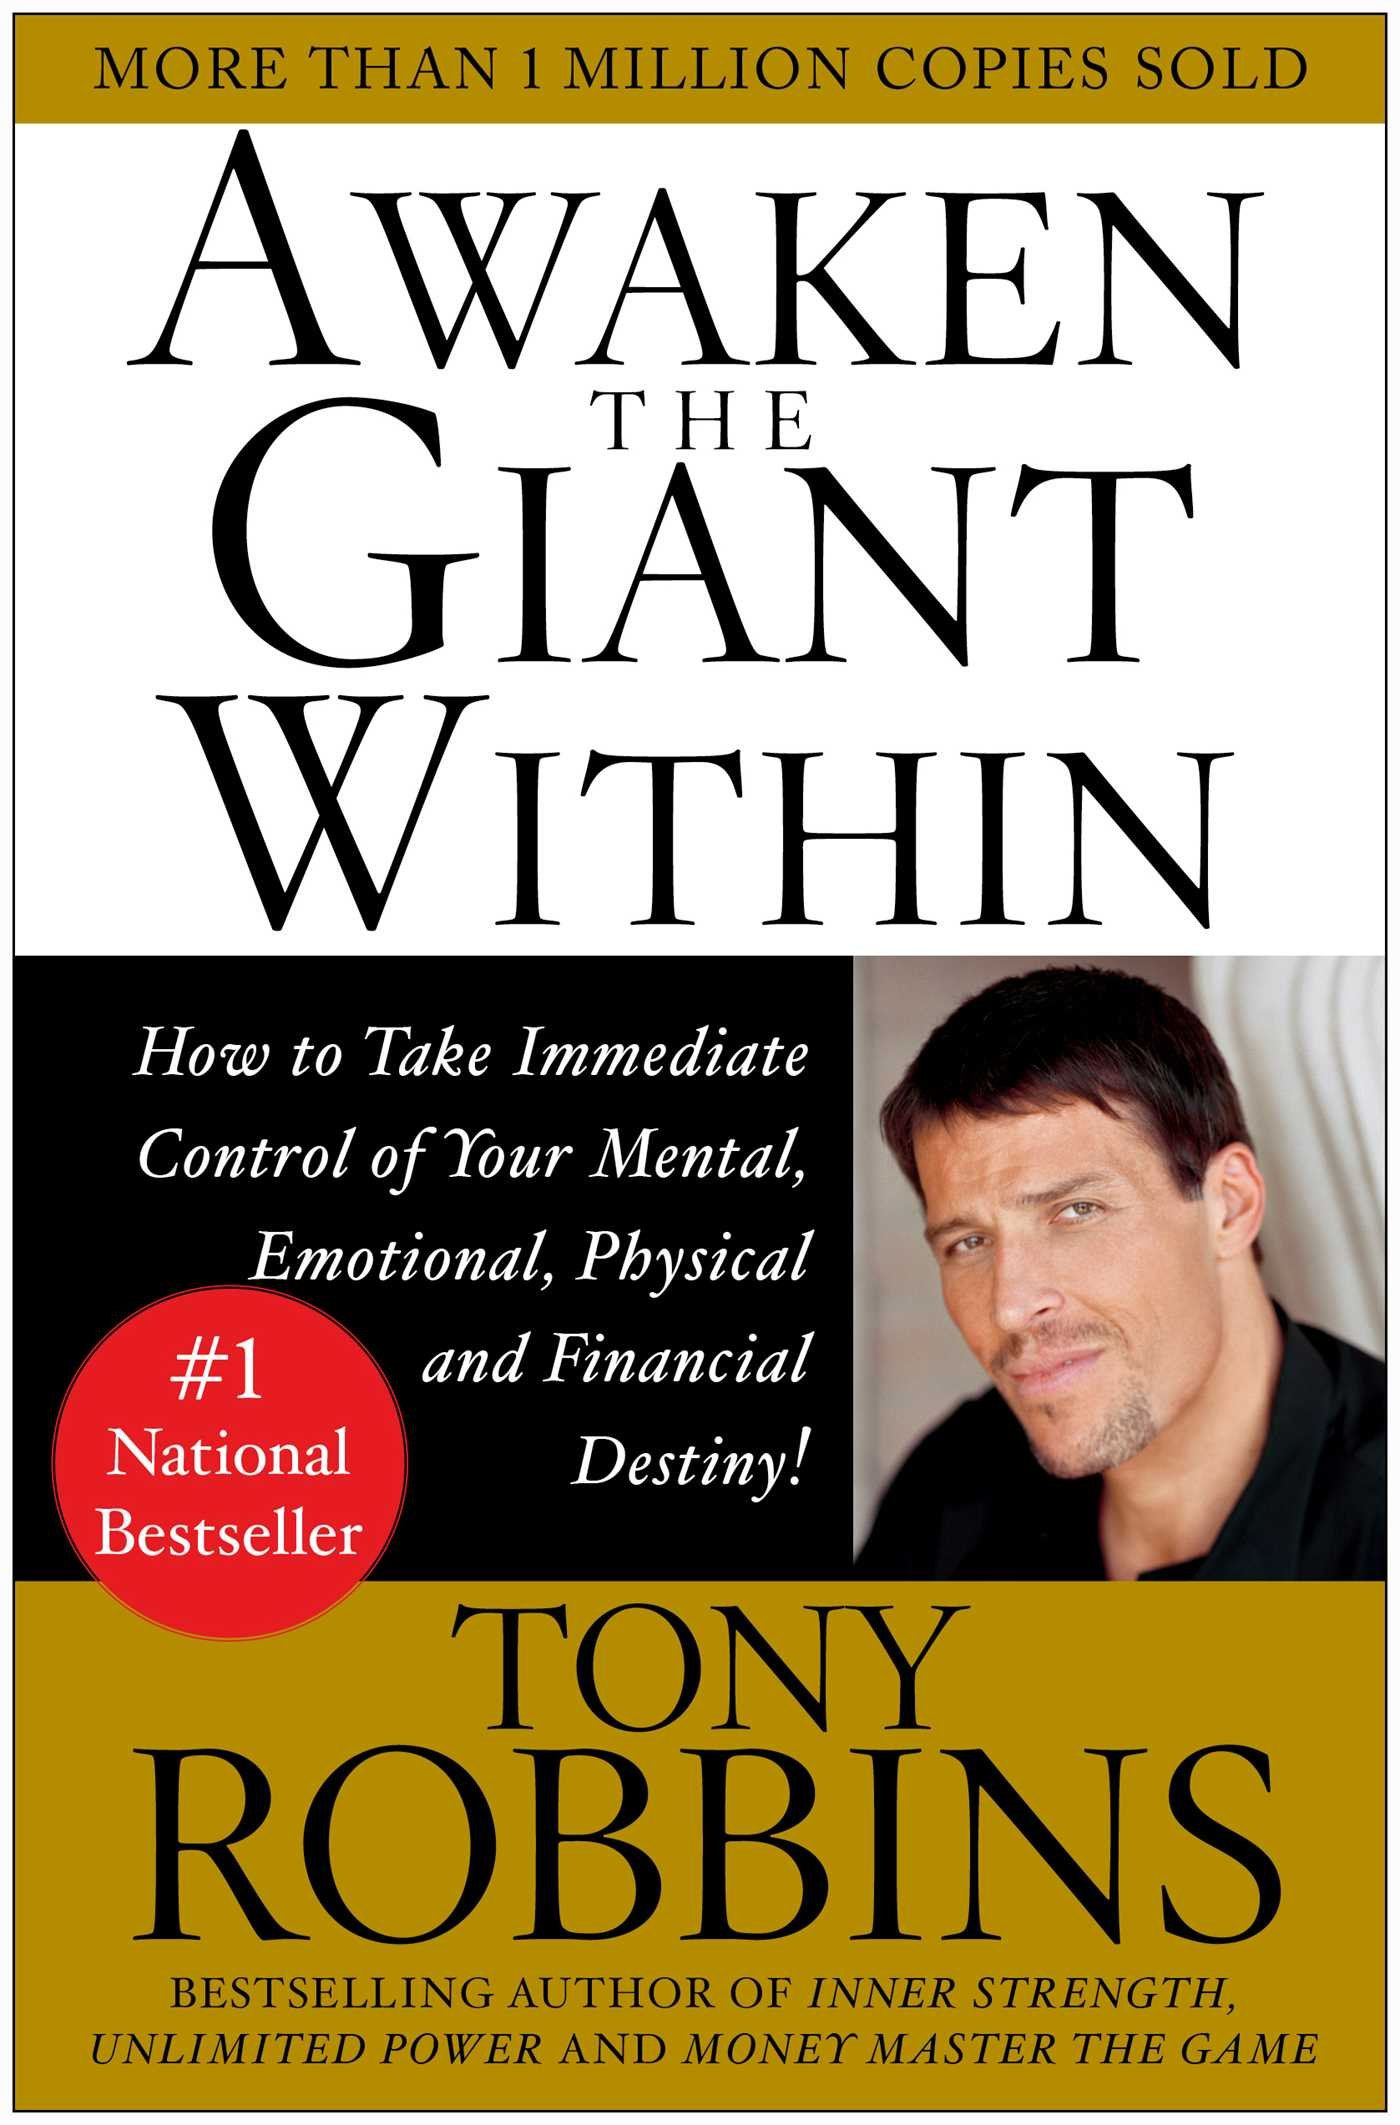 tony robbins sales funnel example Awaken The Giant Within Book